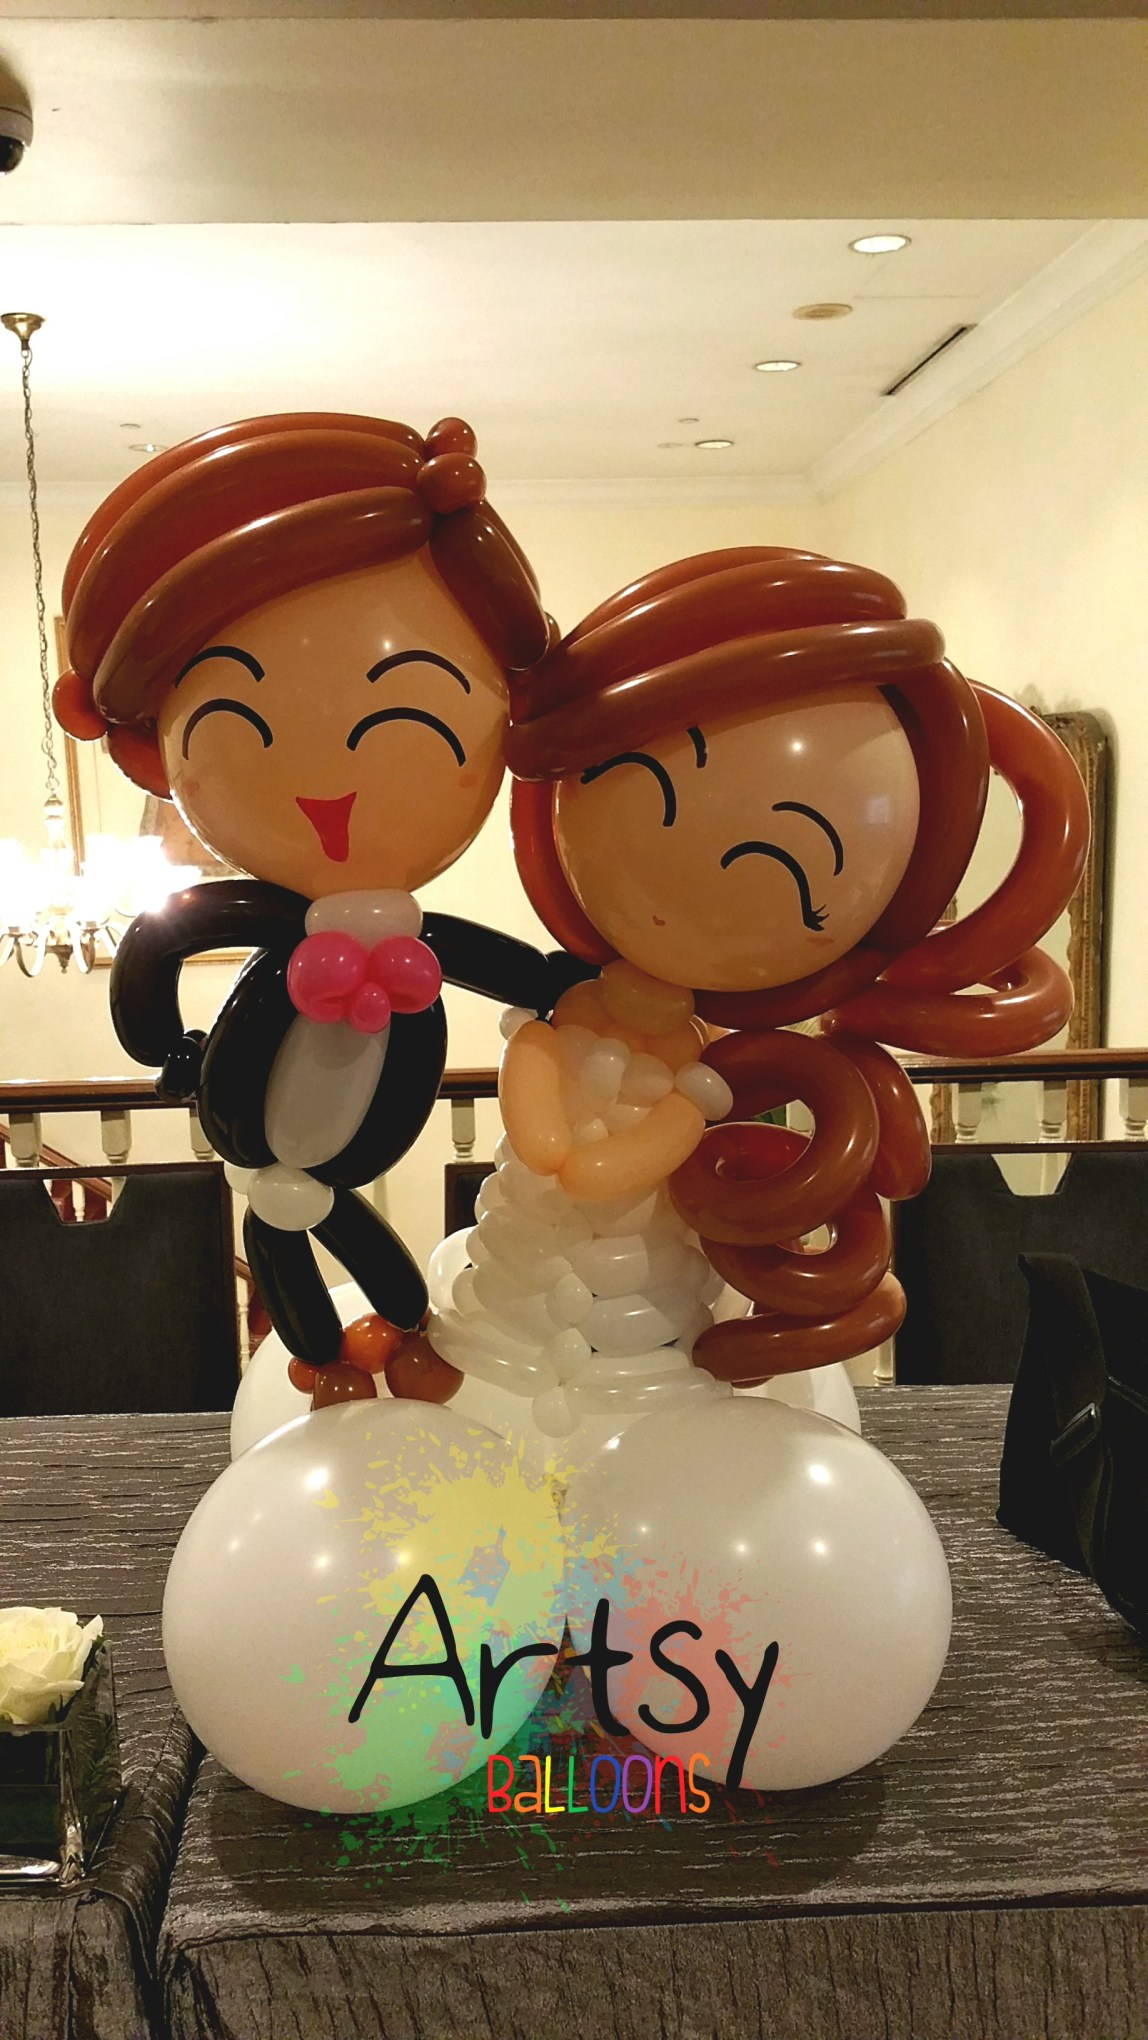 , A sweet and blissful wedding balloon decoration – Wedding couple balloon table display, Singapore Balloon Decoration Services - Balloon Workshop and Balloon Sculpting